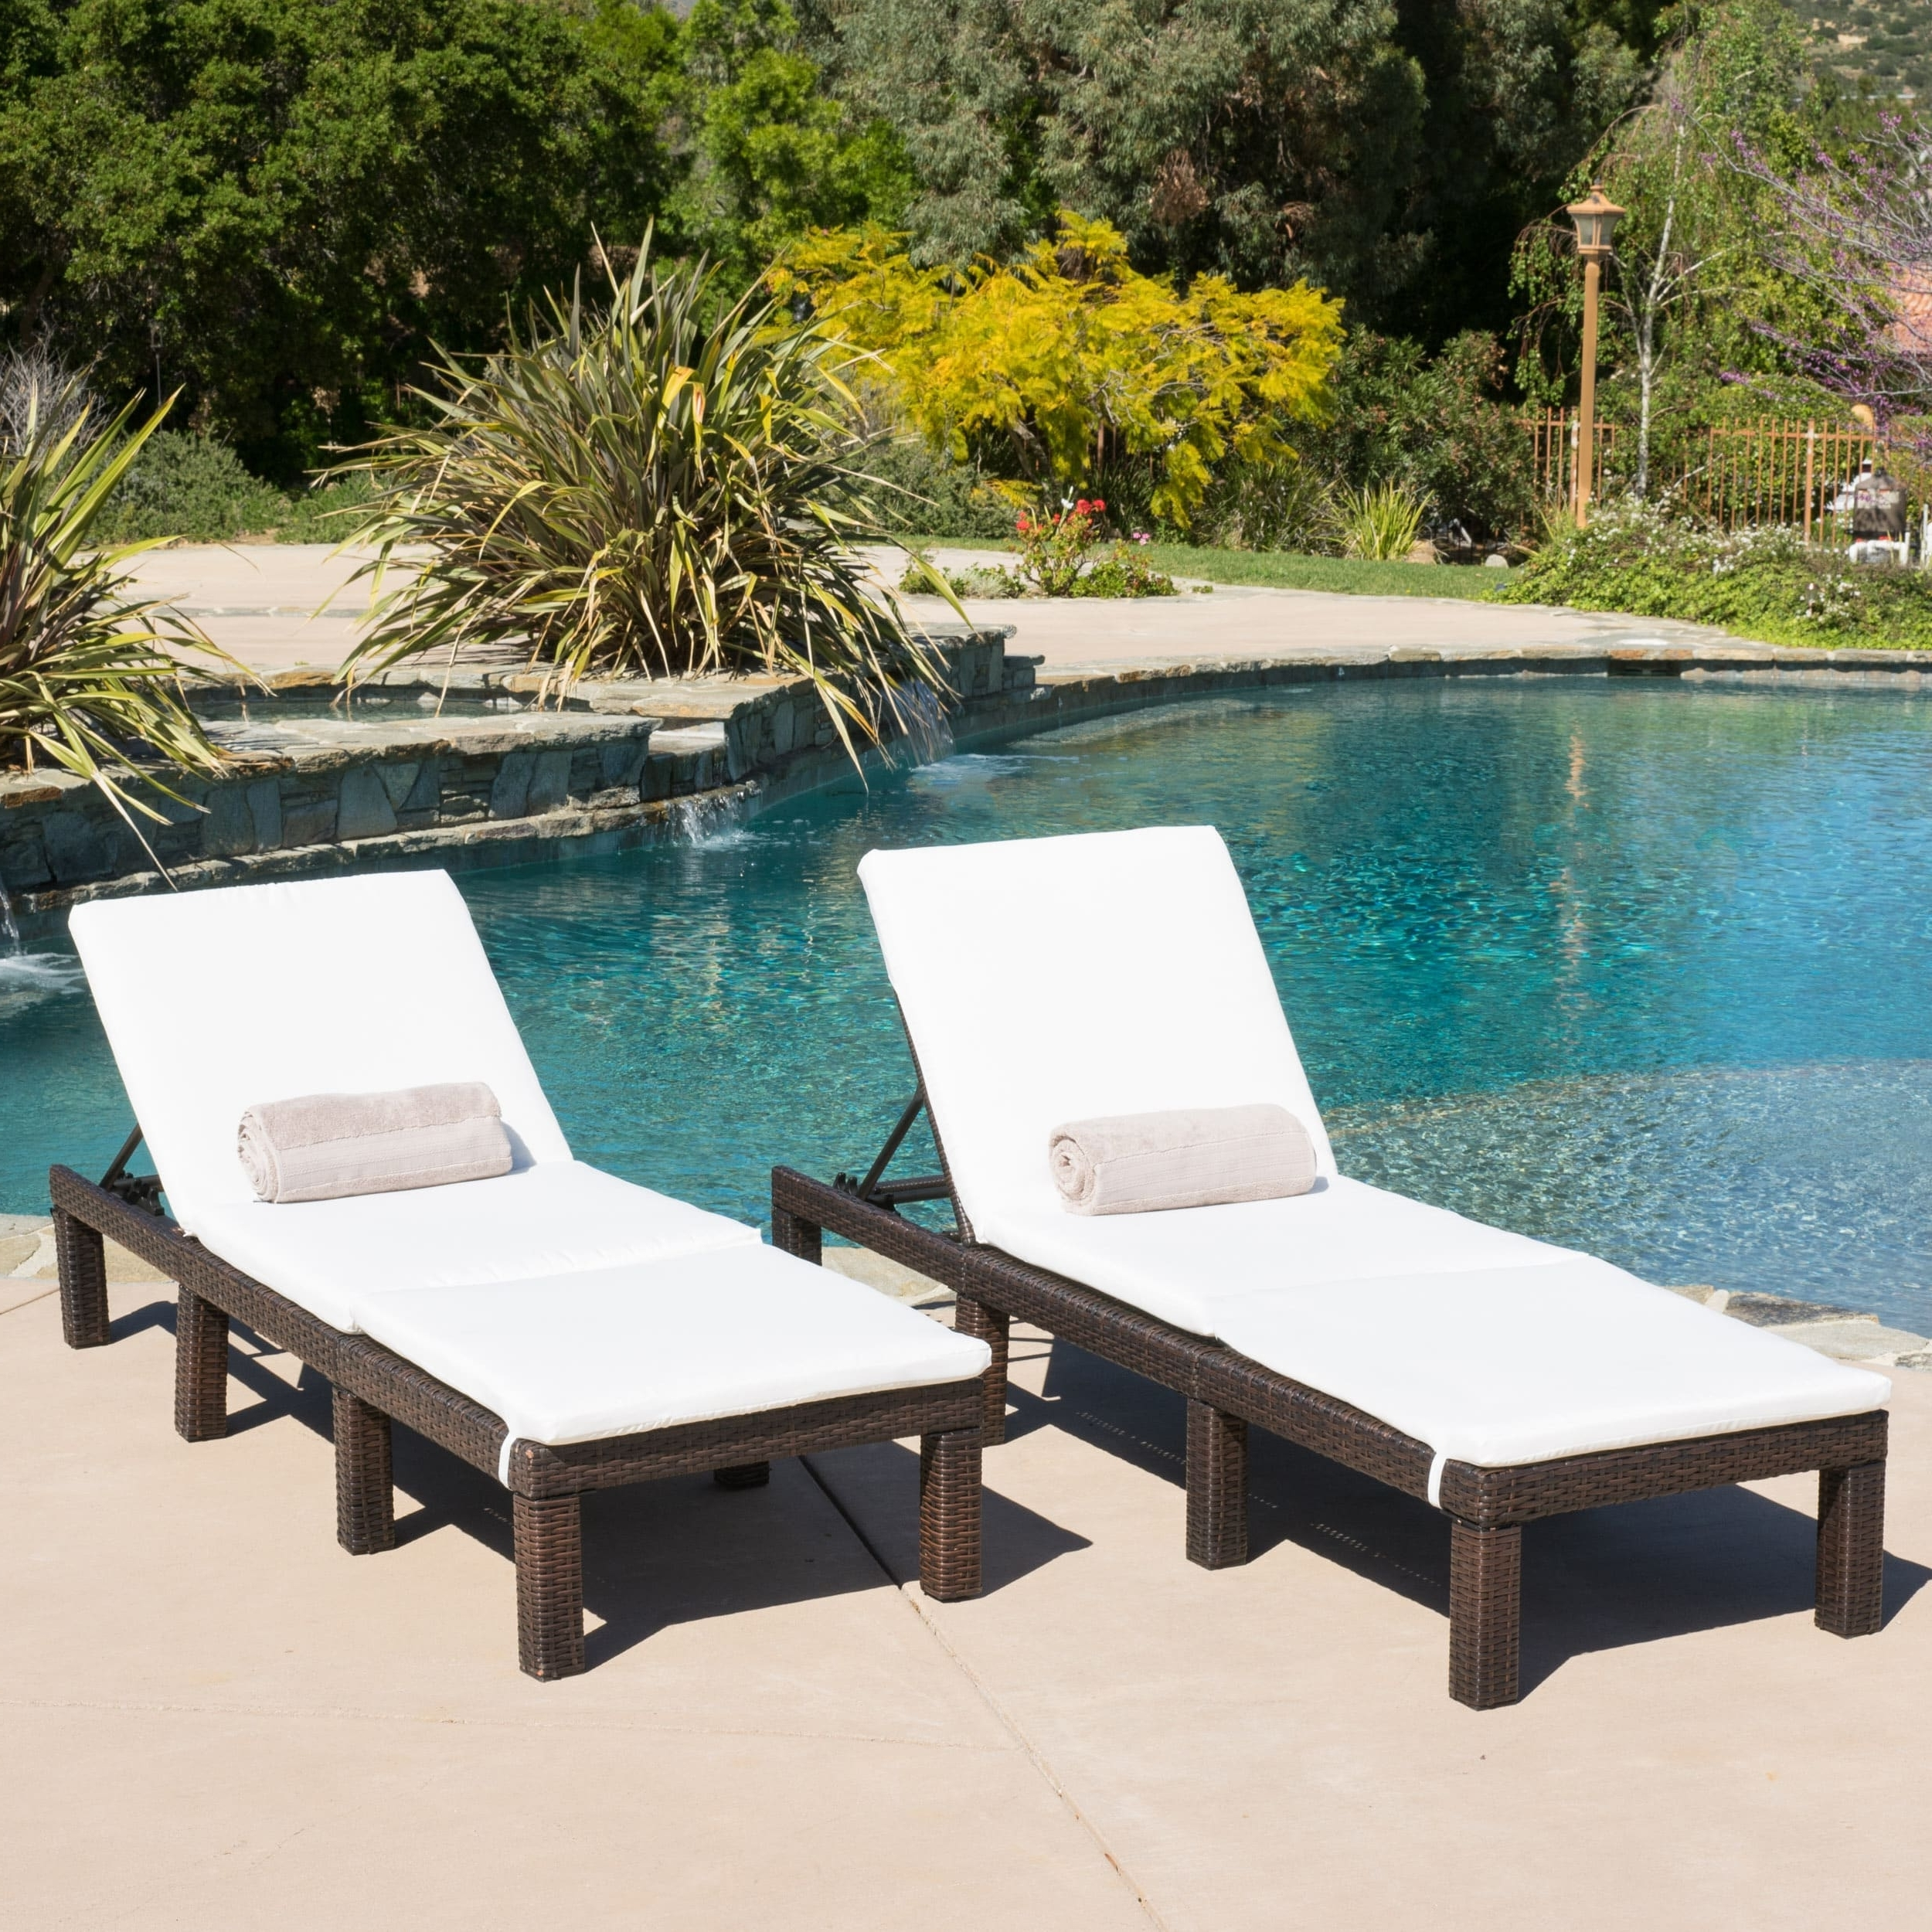 Most Recent Jamaica Outdoor Chaise Lounge With Cushion (Set Of 2) With Regard To Outdoor Chaise Lounges (View 4 of 15)